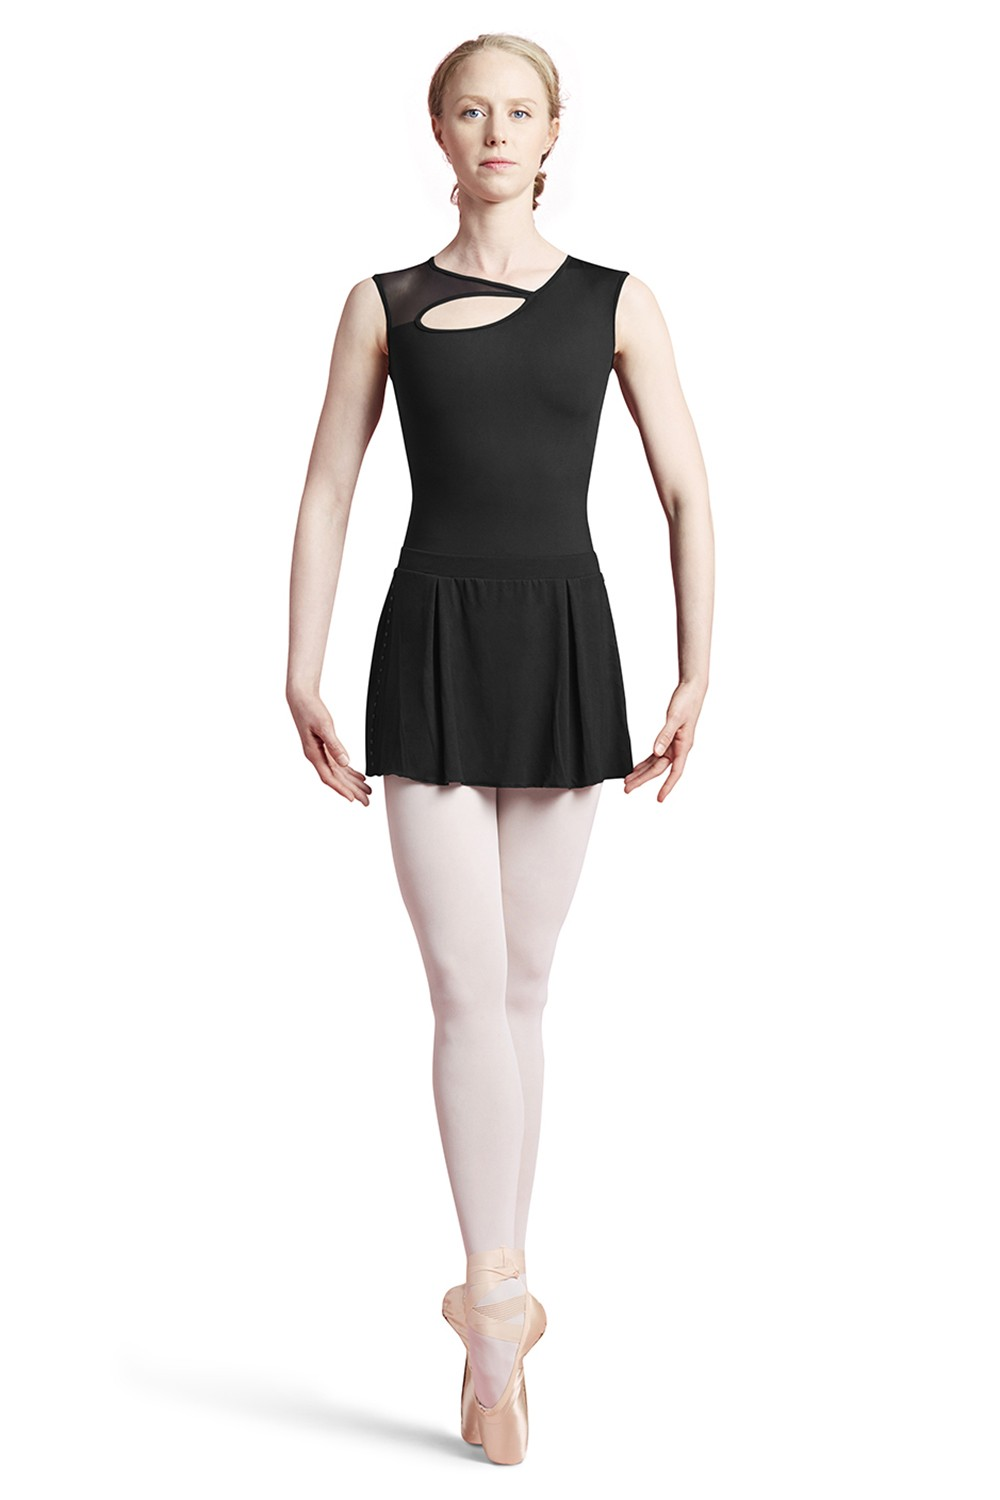 Tyce Women's Dance Leotards